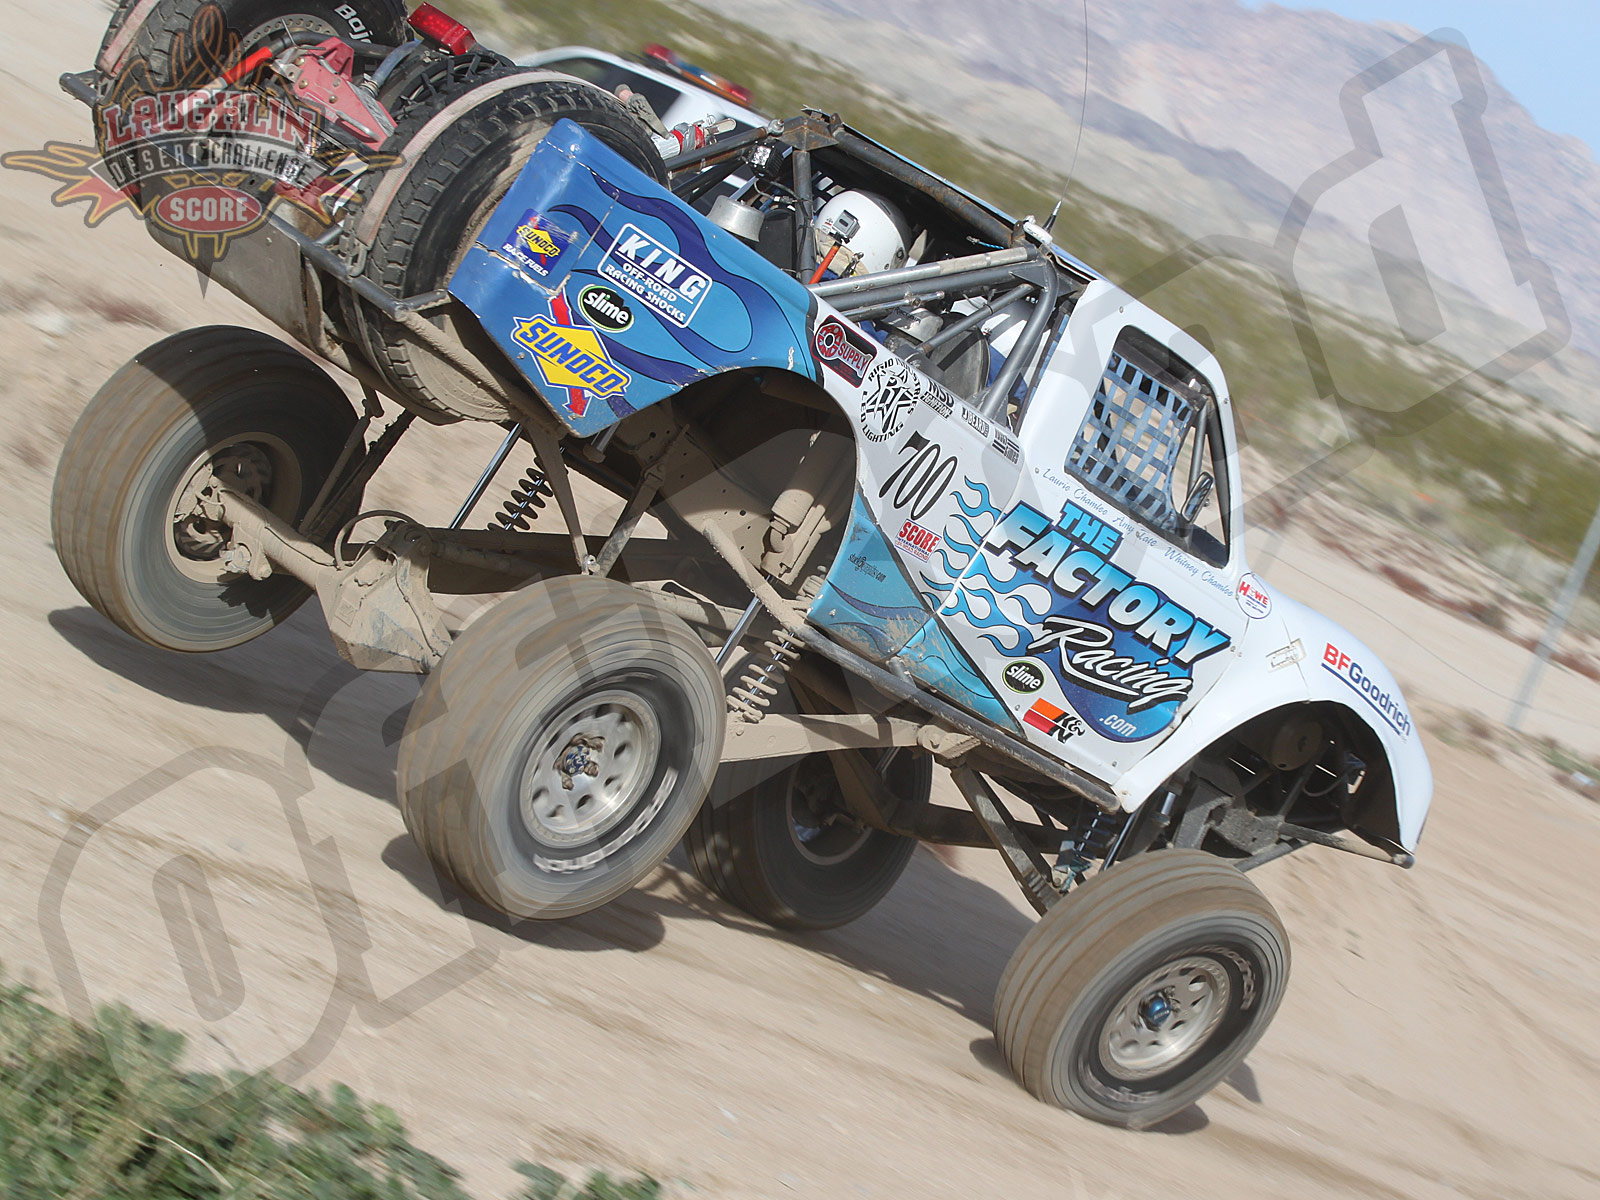 012011or 6563+2011 score laughlin desert challenge+truck classes